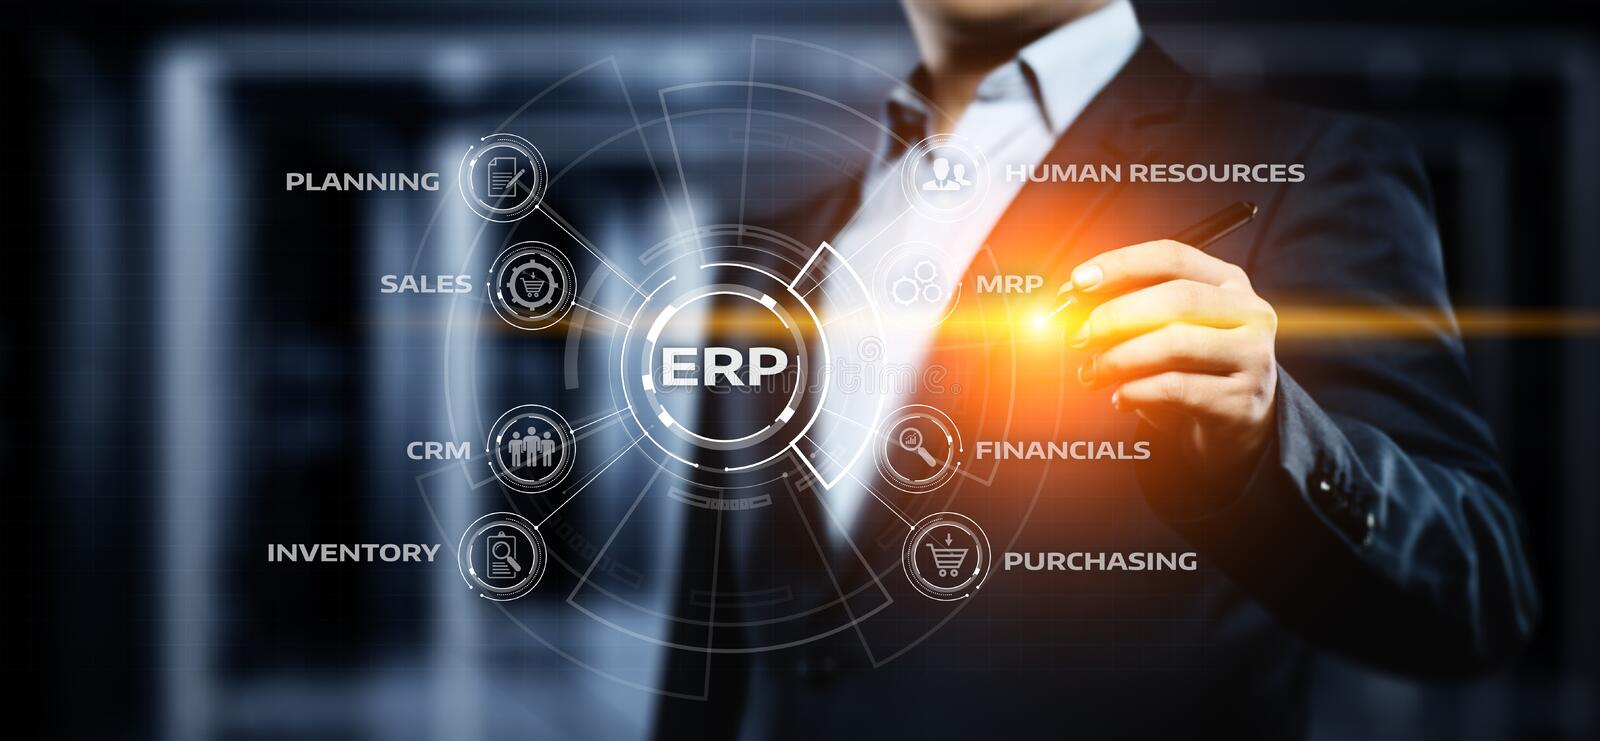 Enterprise Resource Planning ERP Corporate Company Management Business Internet Technology Concept.  royalty free stock image